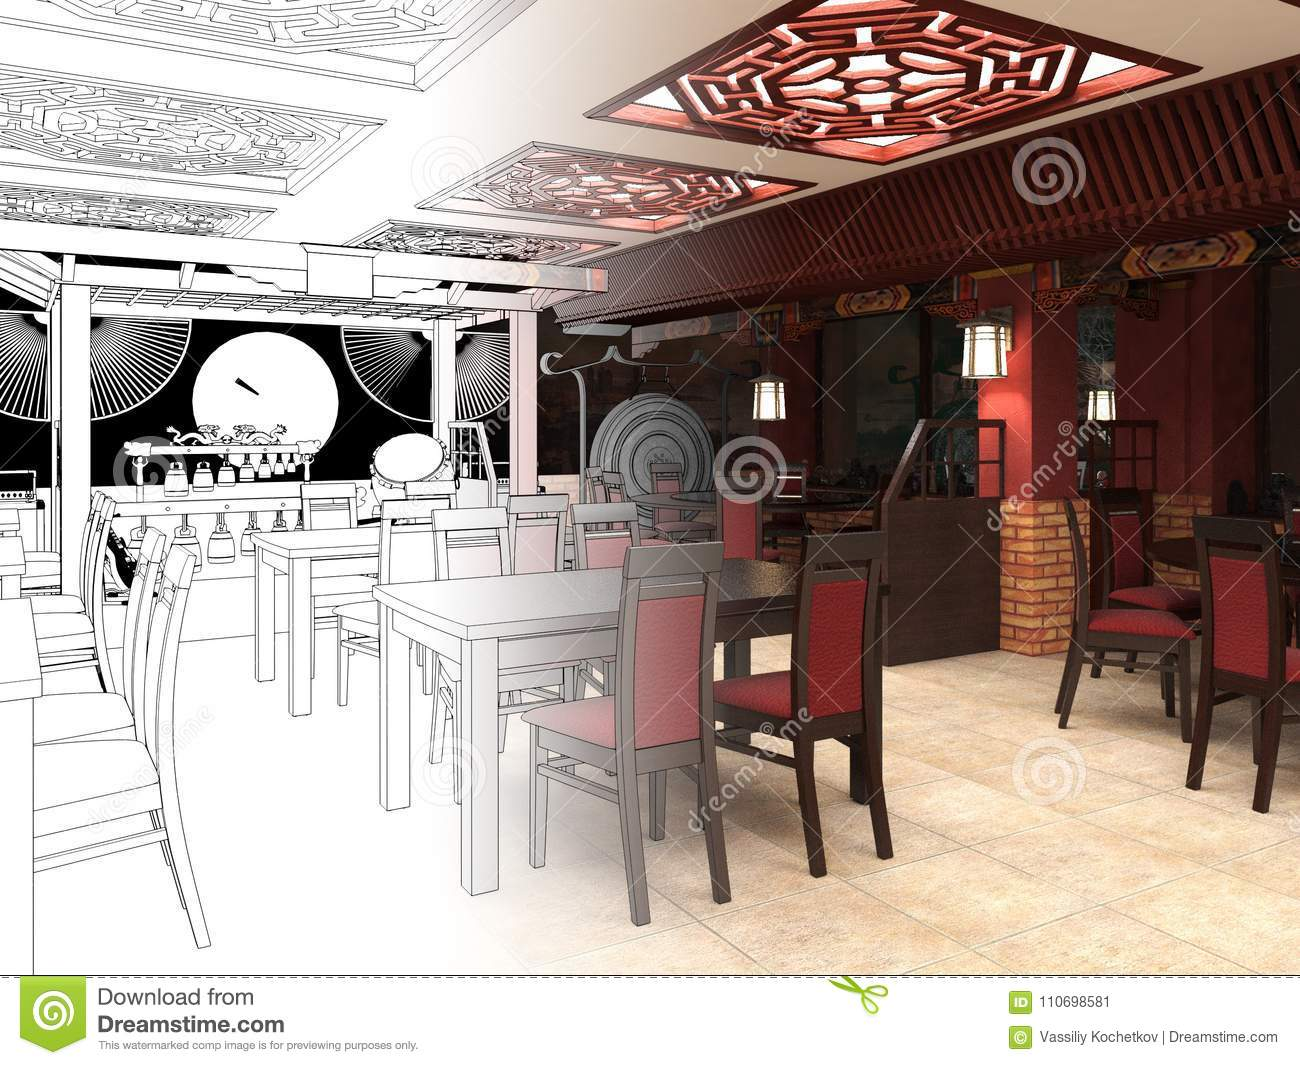 Render Black And White Sketch Of The Chinese Restaurant Interior Design Stock Illustration Illustration Of Architecture Design 110698581